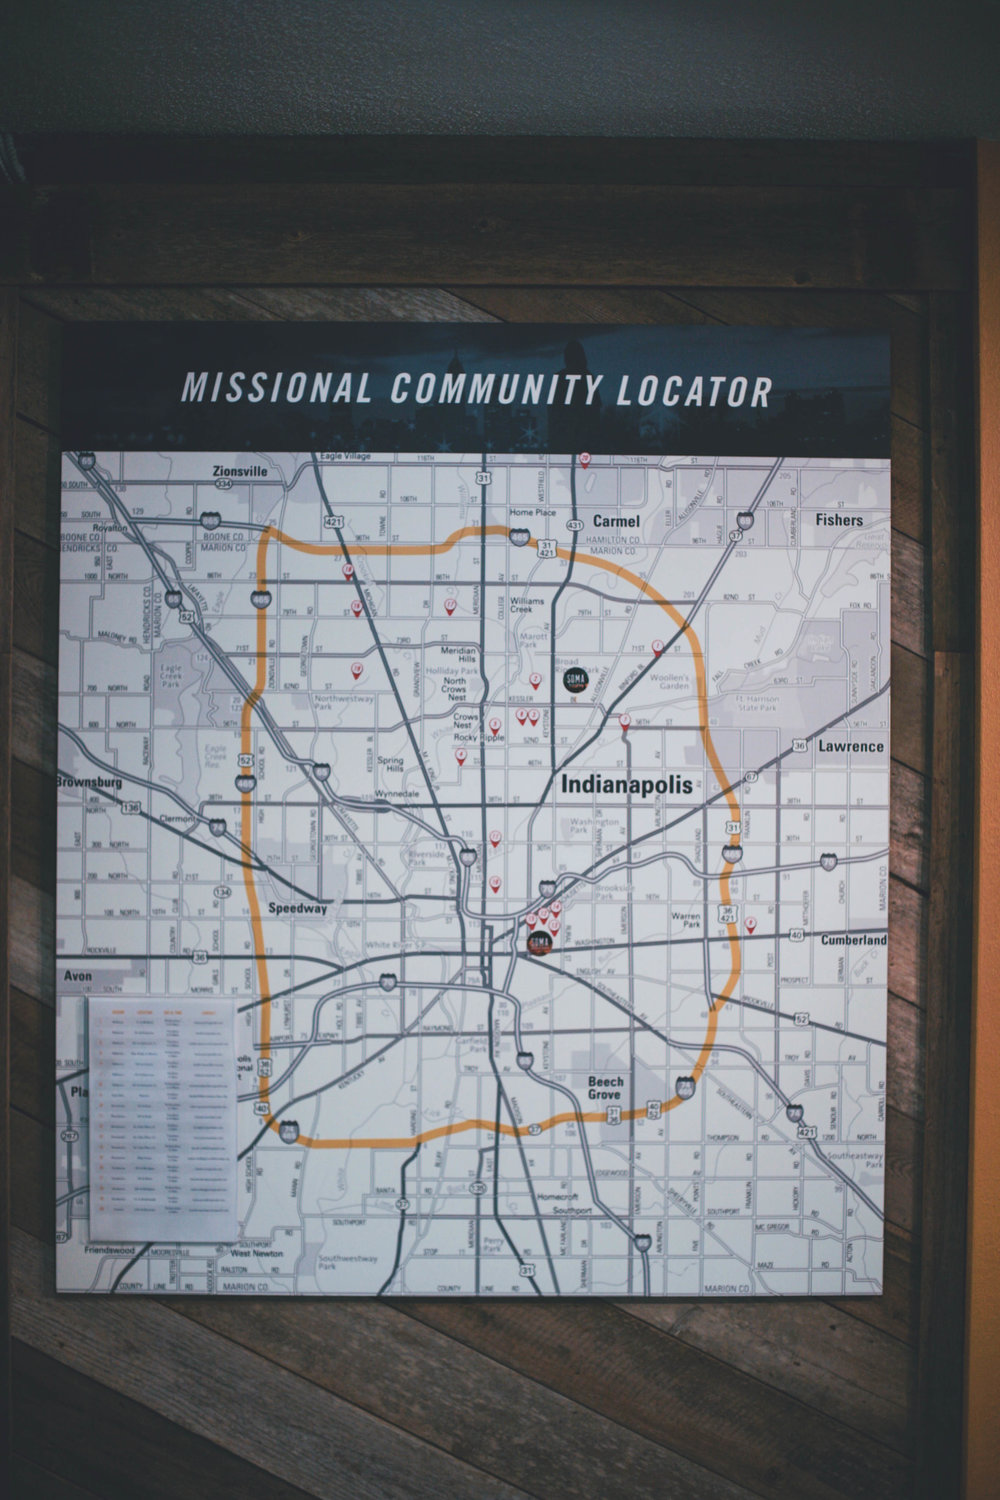 "We LOVE this ""Missional Community Locator"" we found in the lobby. Such a great reminder and tool that helps propel us toward mission."